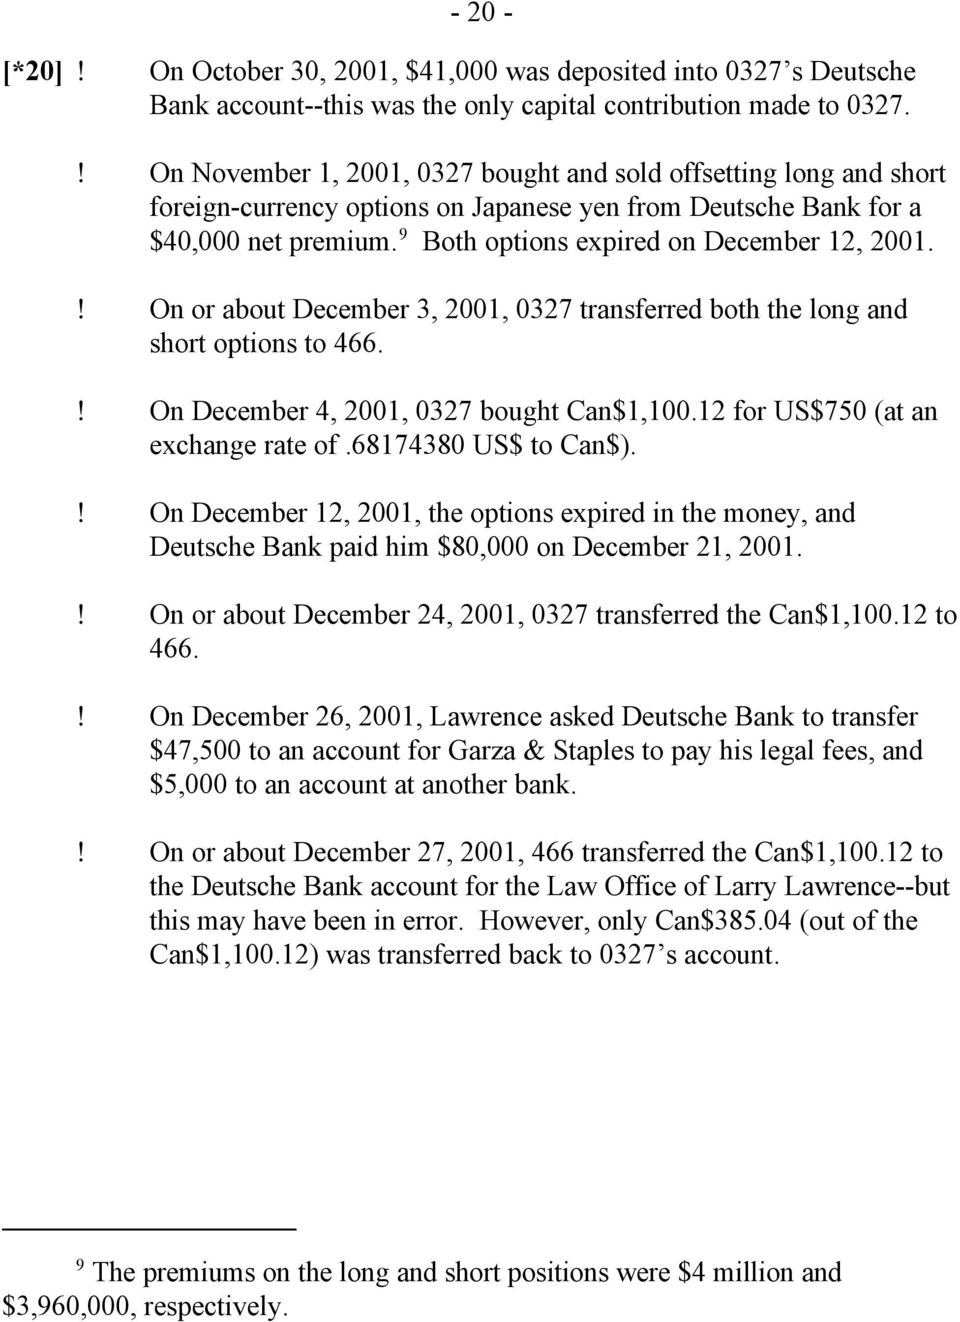 9 Both options expired on December 12, 2001.! On or about December 3, 2001, 0327 transferred both the long and short options to 466.! On December 4, 2001, 0327 bought Can$1,100.